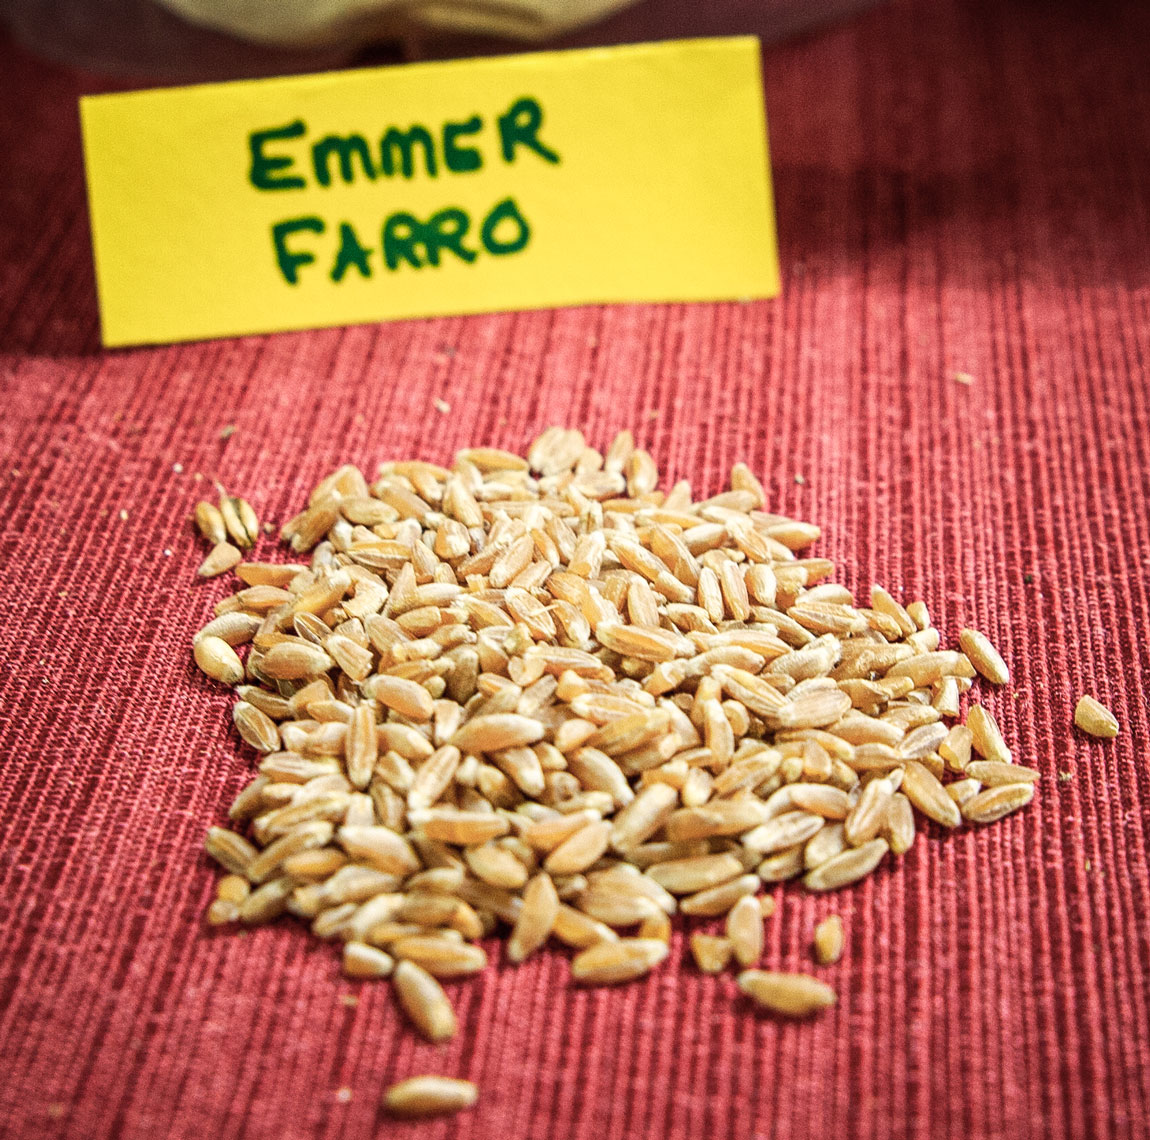 A small pile of Emmer Farro grain.